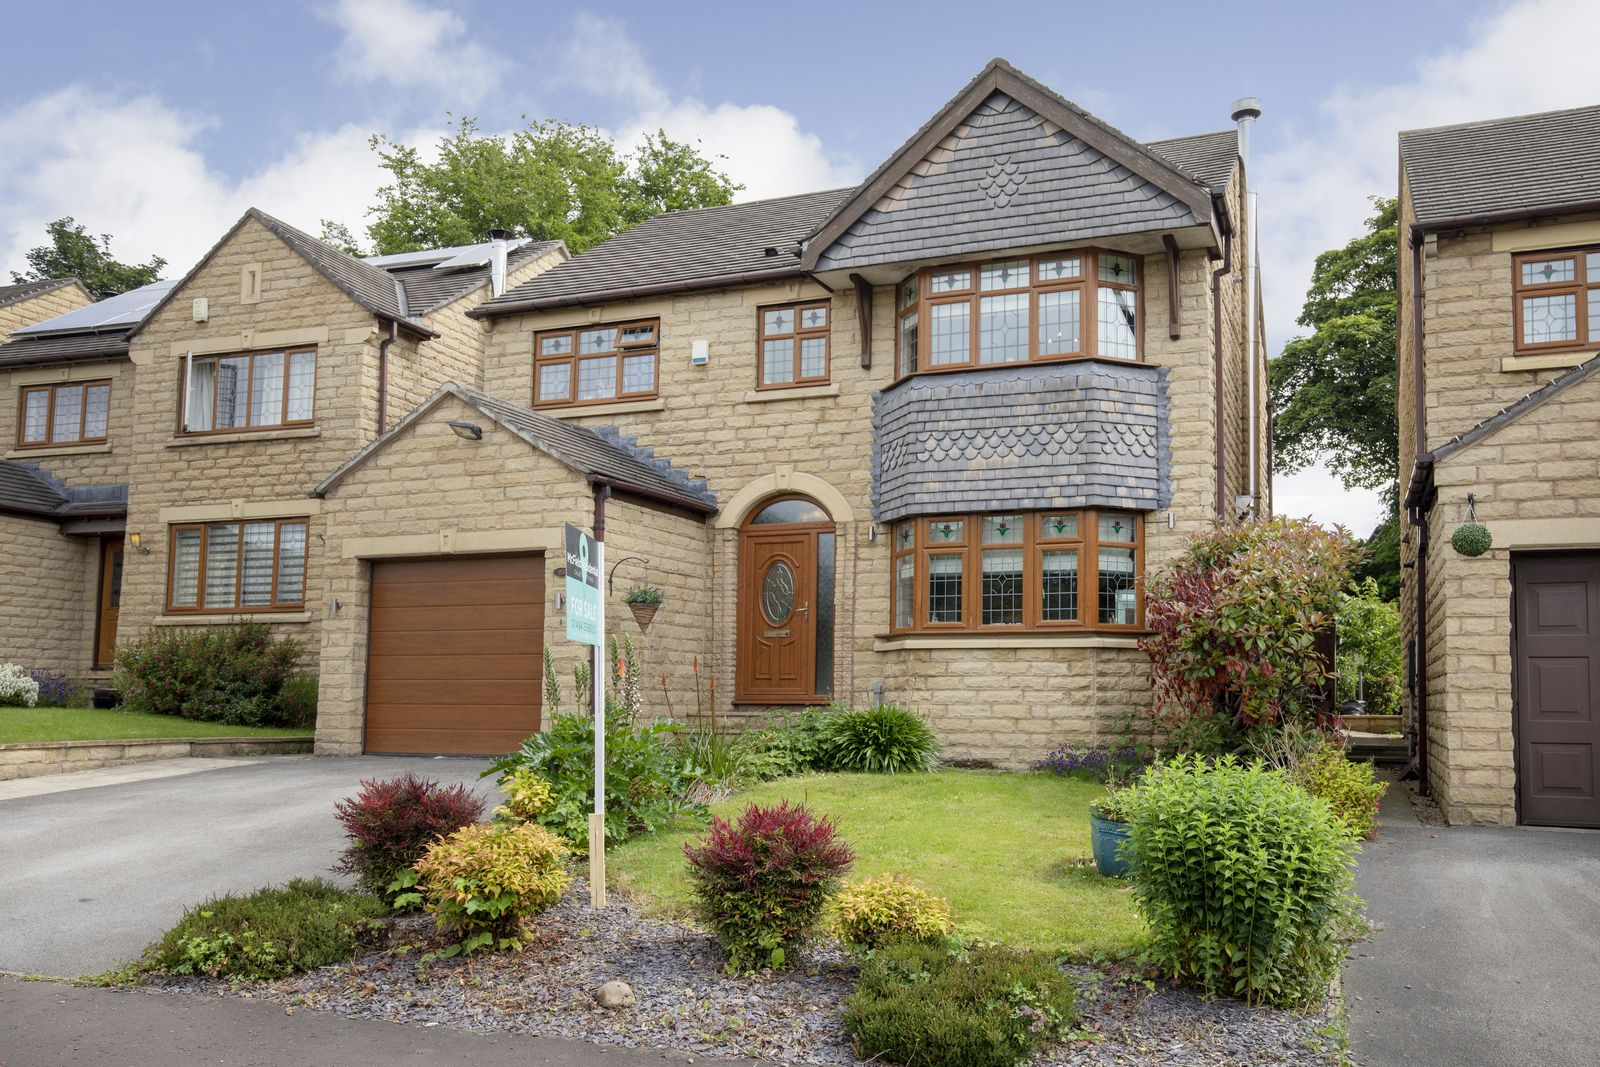 4 bedroom detached house Sold in Brighouse - Photograph 2